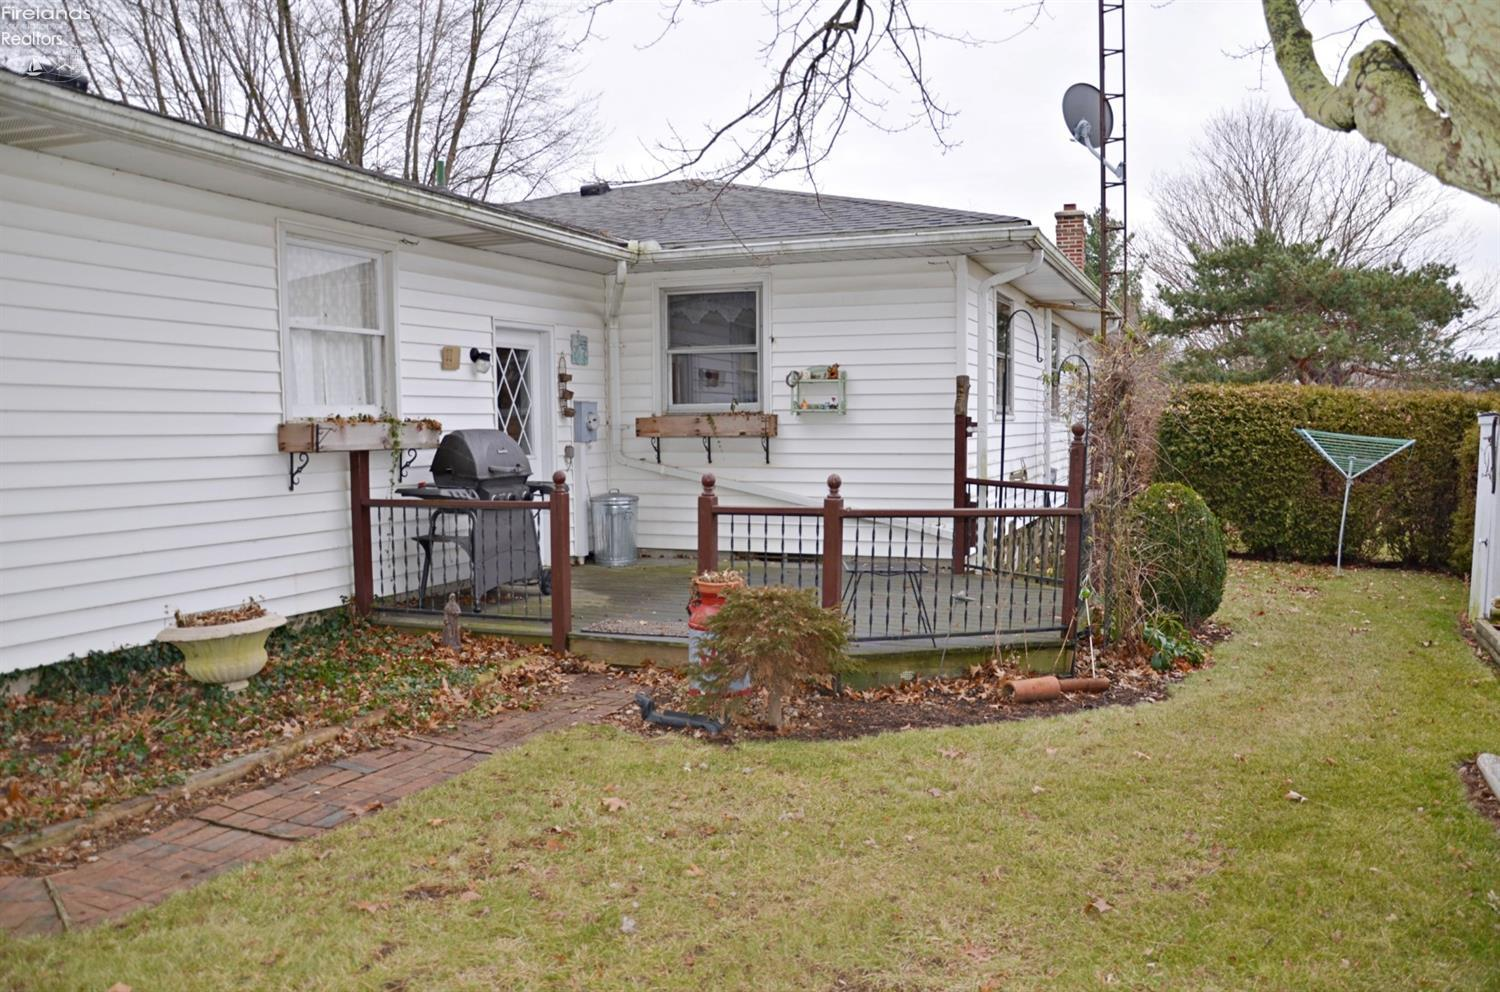 4117 W TOWNSHIP RD 98, TIFFIN, OH 44883  Photo 23